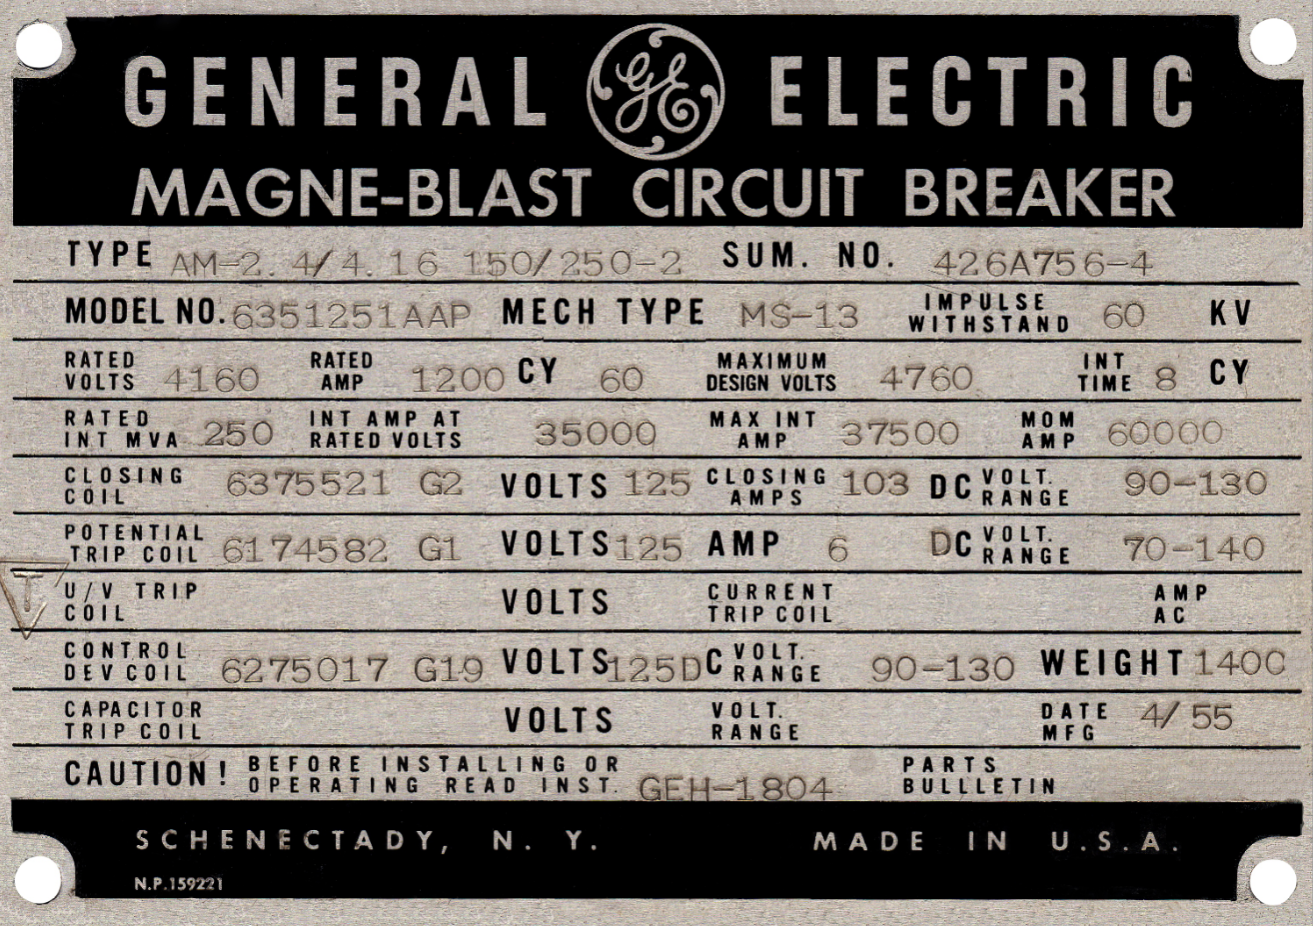 A nameplate for a AM 2.4/4.16-150/250-3 General Electric Magne-Blast dual rated circuit breaker.